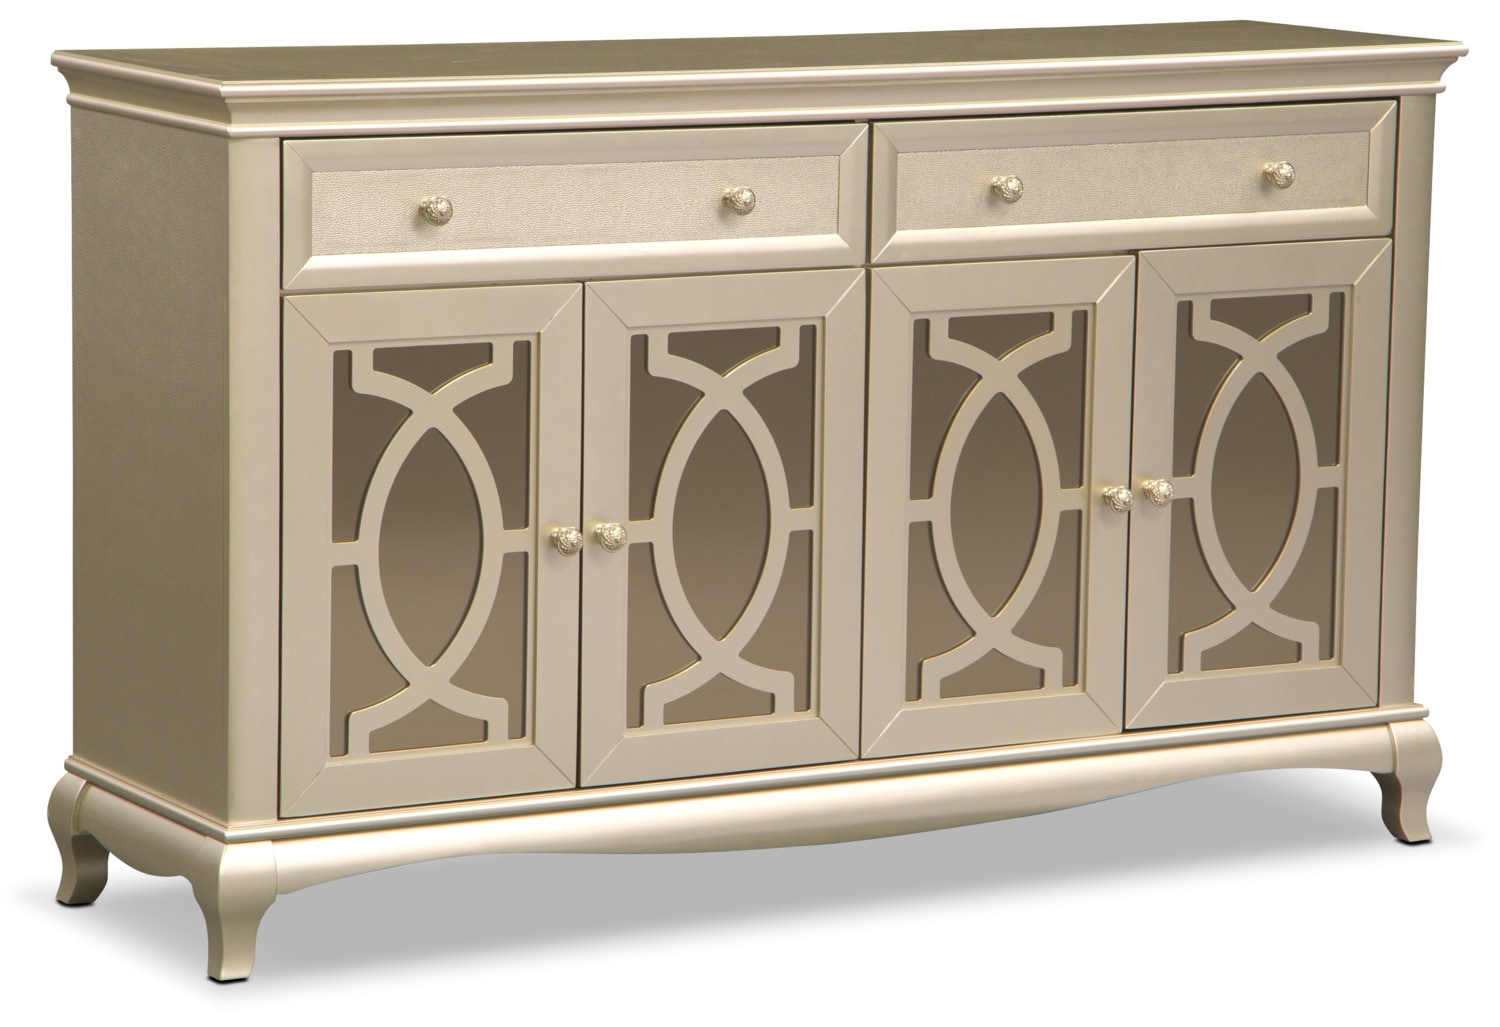 Dining Room Furniture - Allegro Sideboard